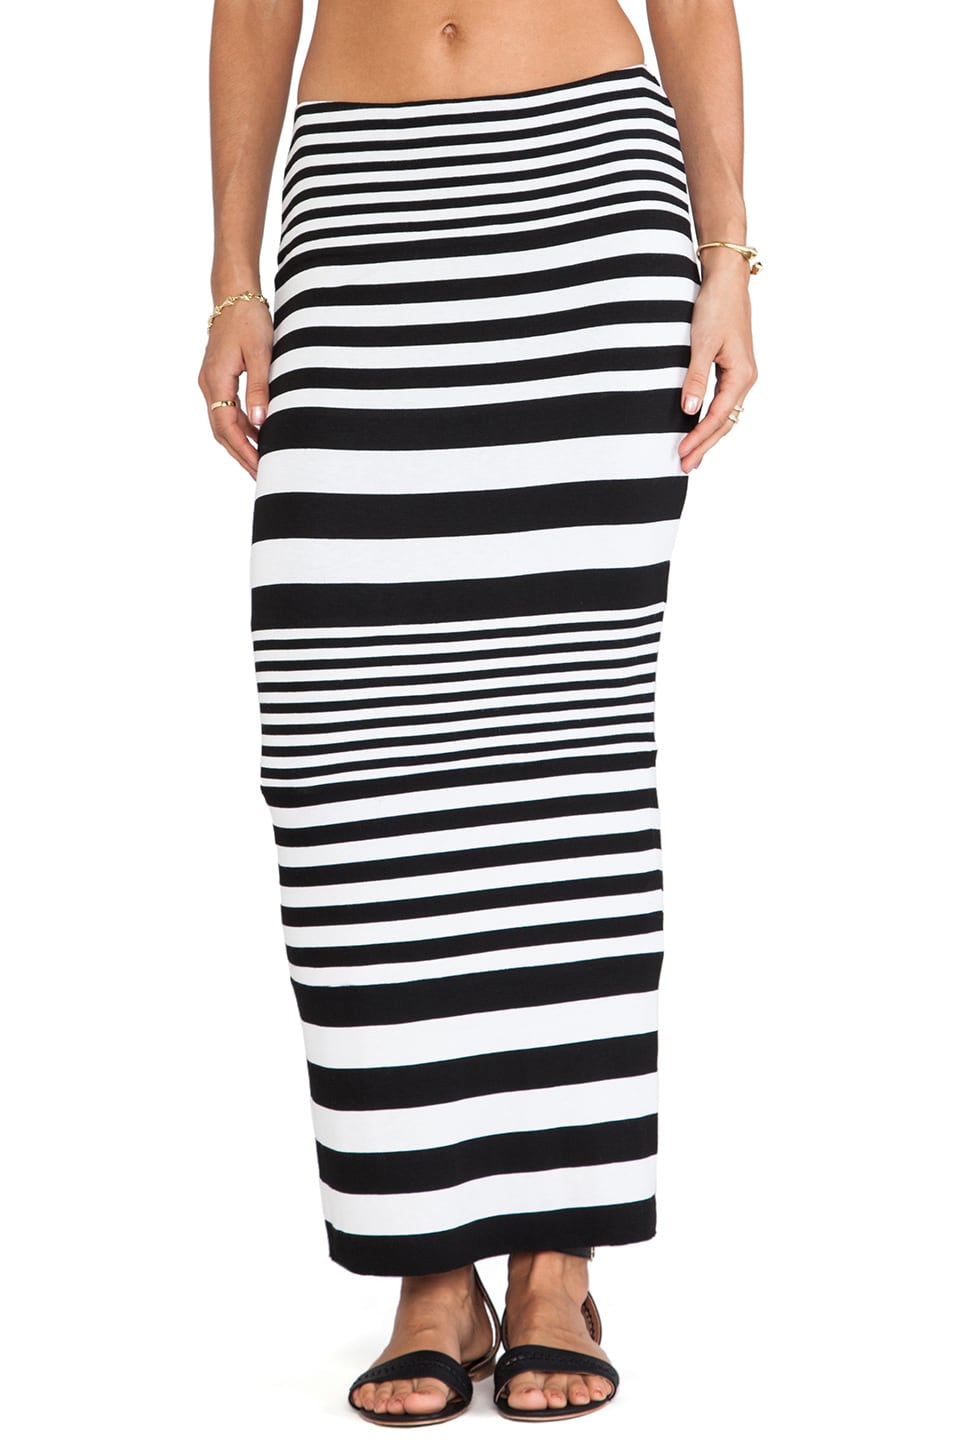 Bailey 44 Street Art Skirt in Stripe